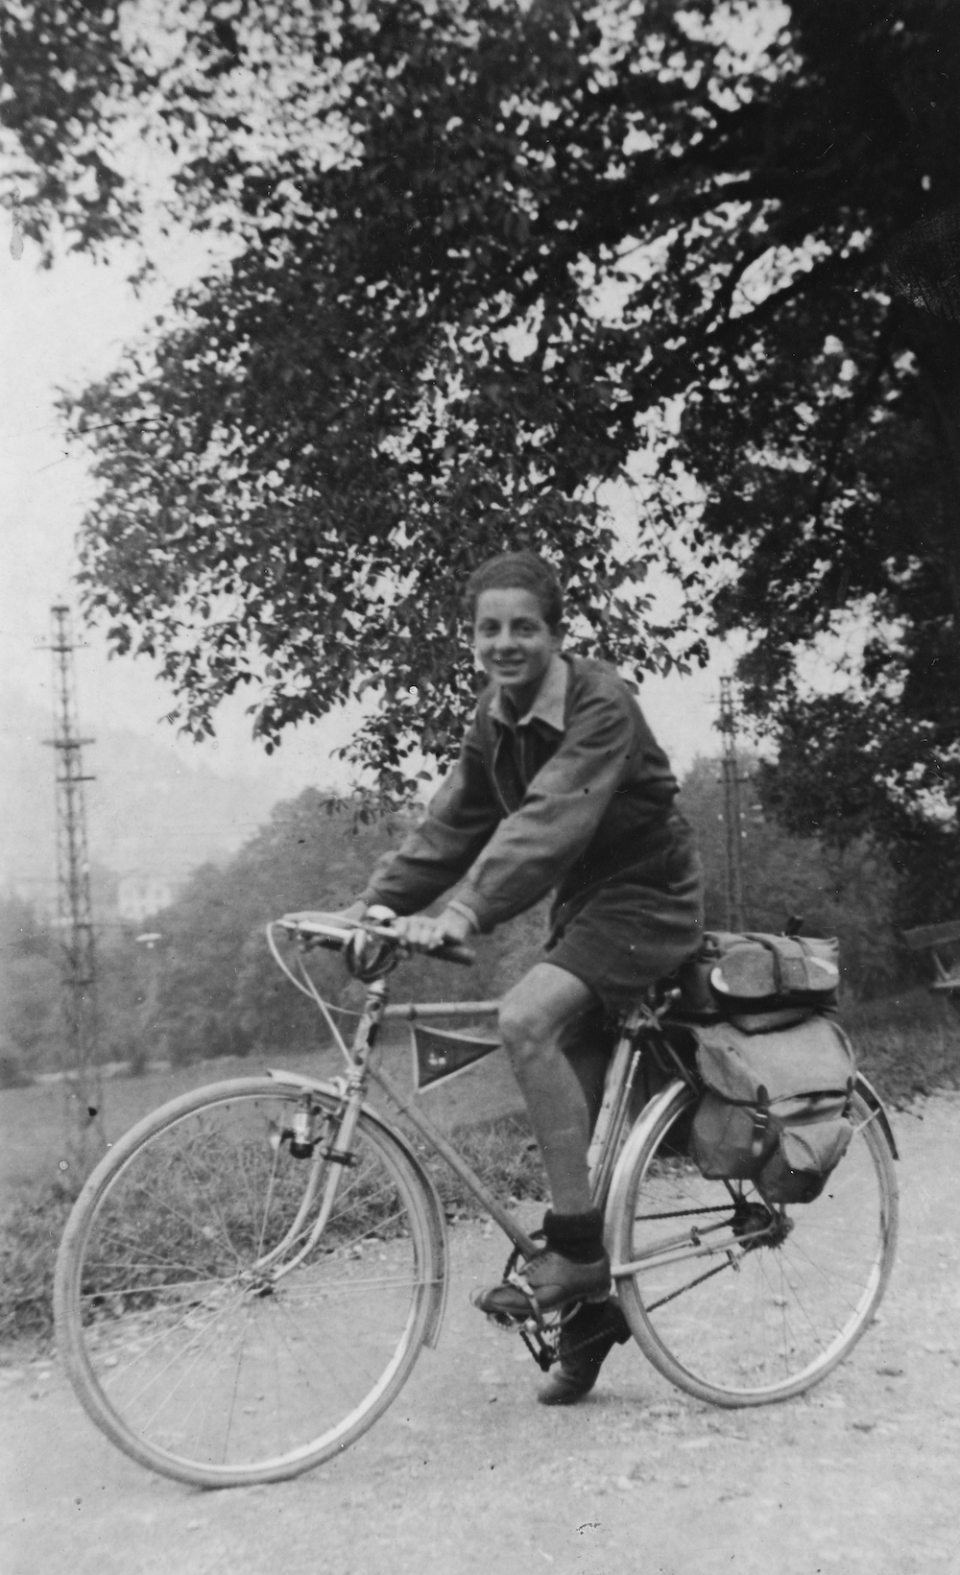 Kalischer on his bicycle as a teenager, France, late 1930s